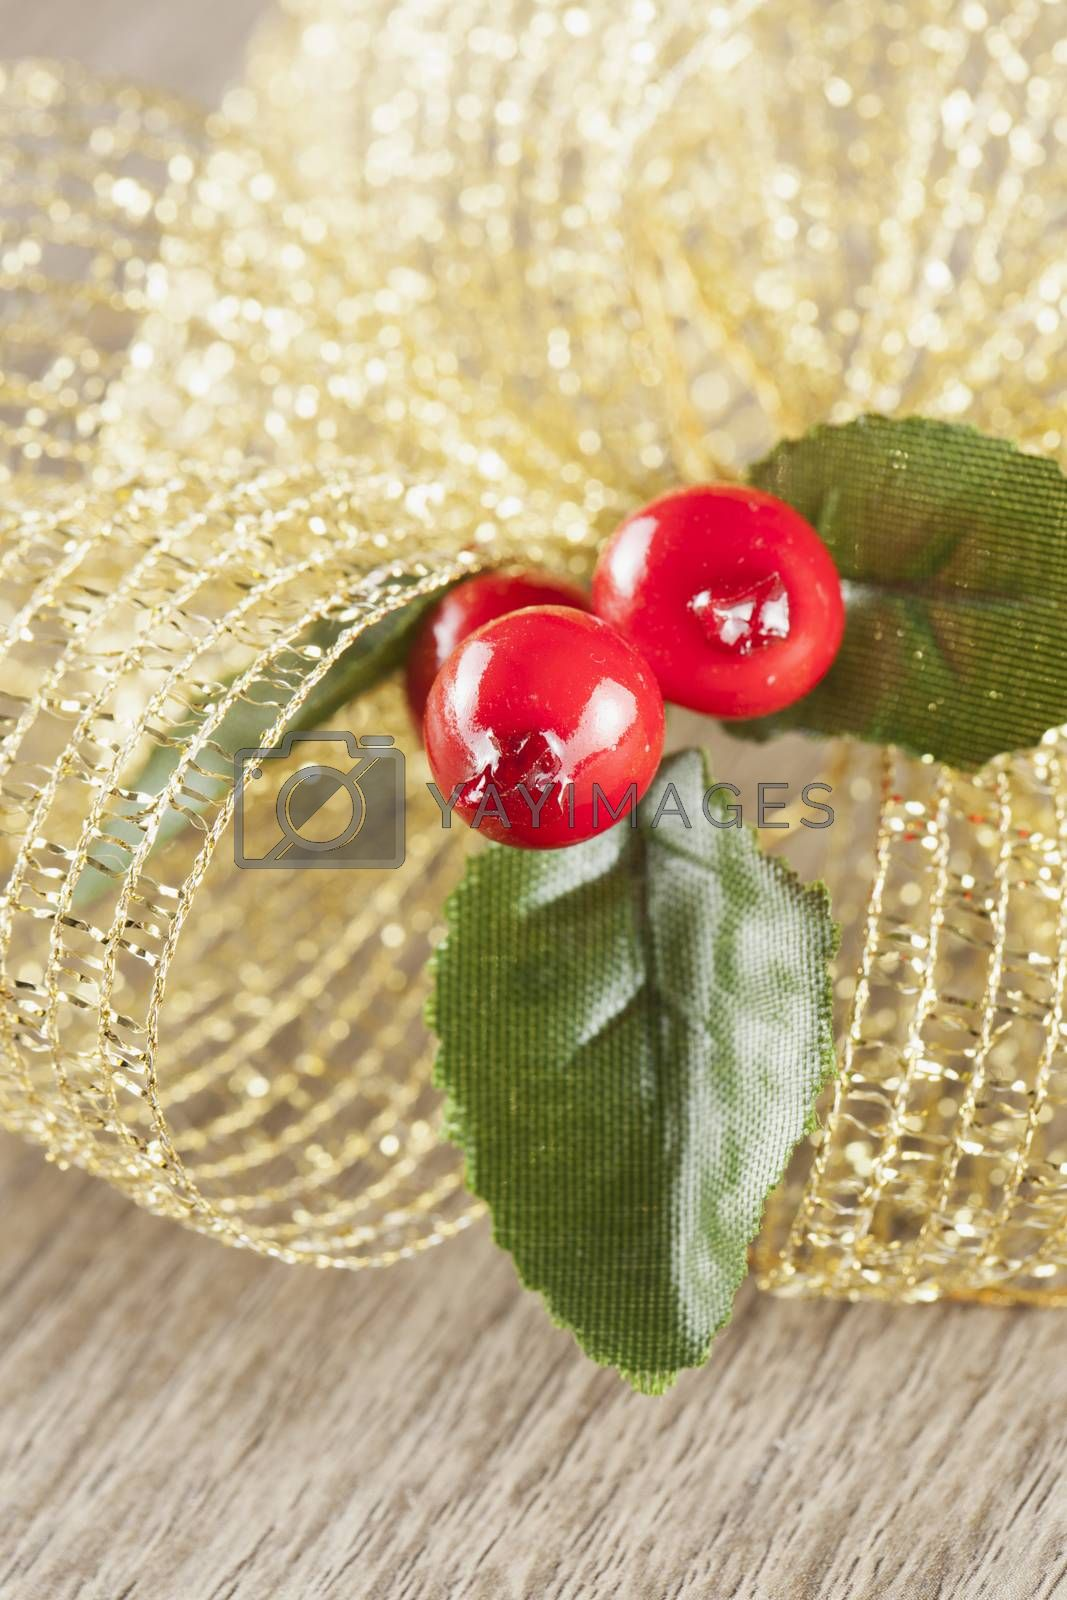 Royalty free image of Christmas decoration by Koufax73